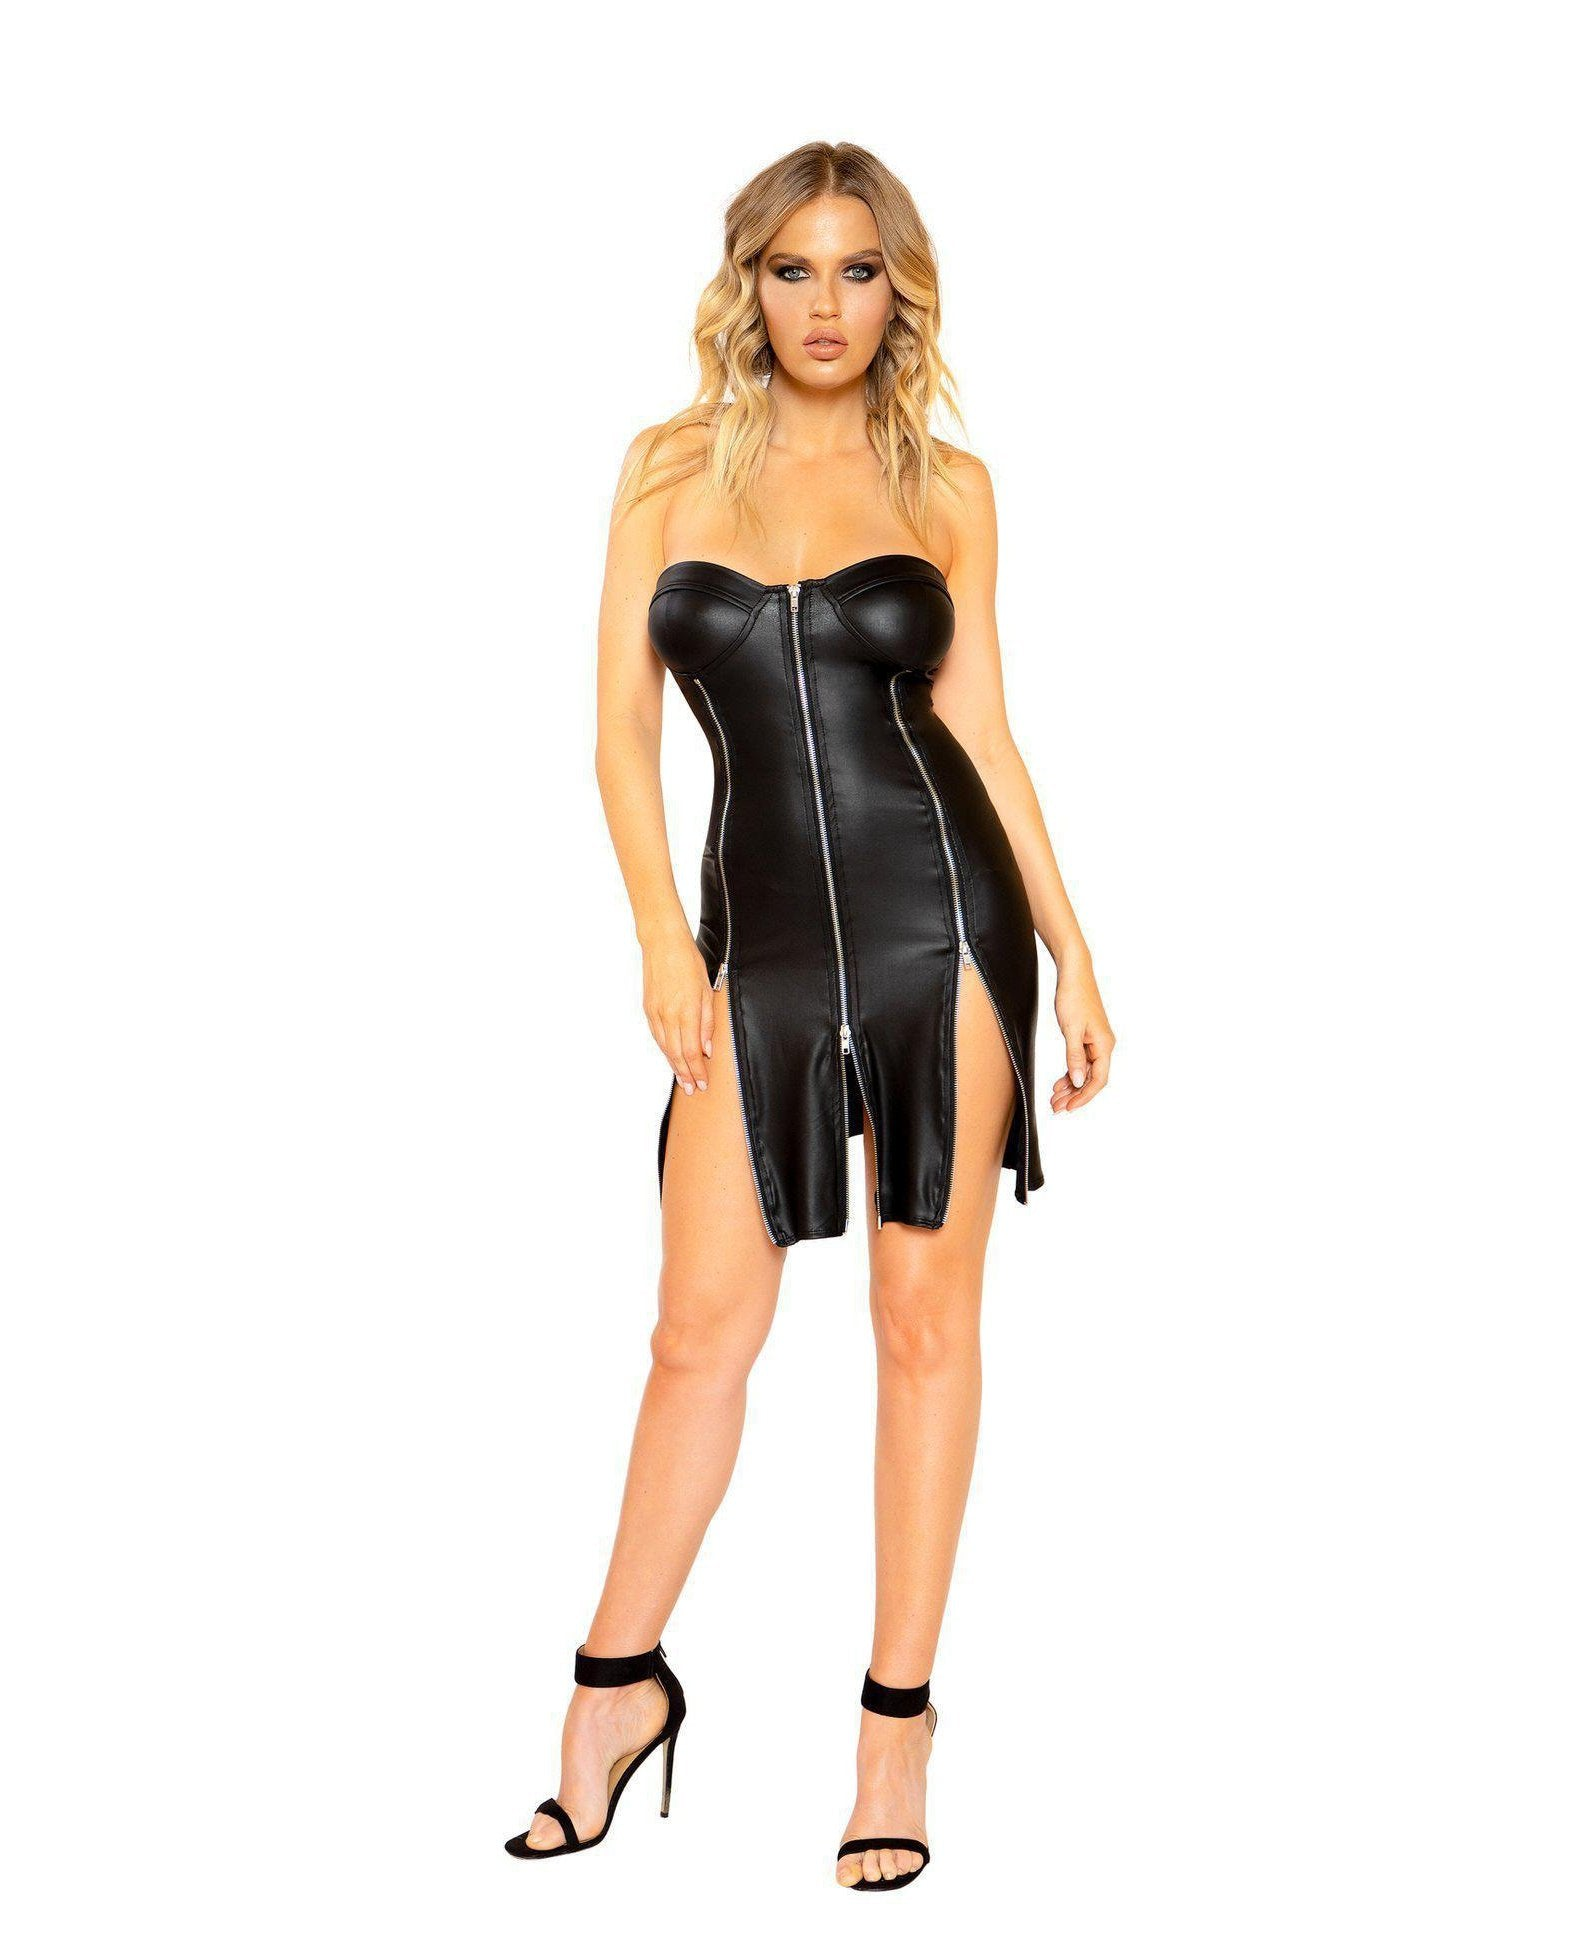 Strapless Leather Look Dress with Triple Zipper Detail club wear Size SmallColor BlackNakees